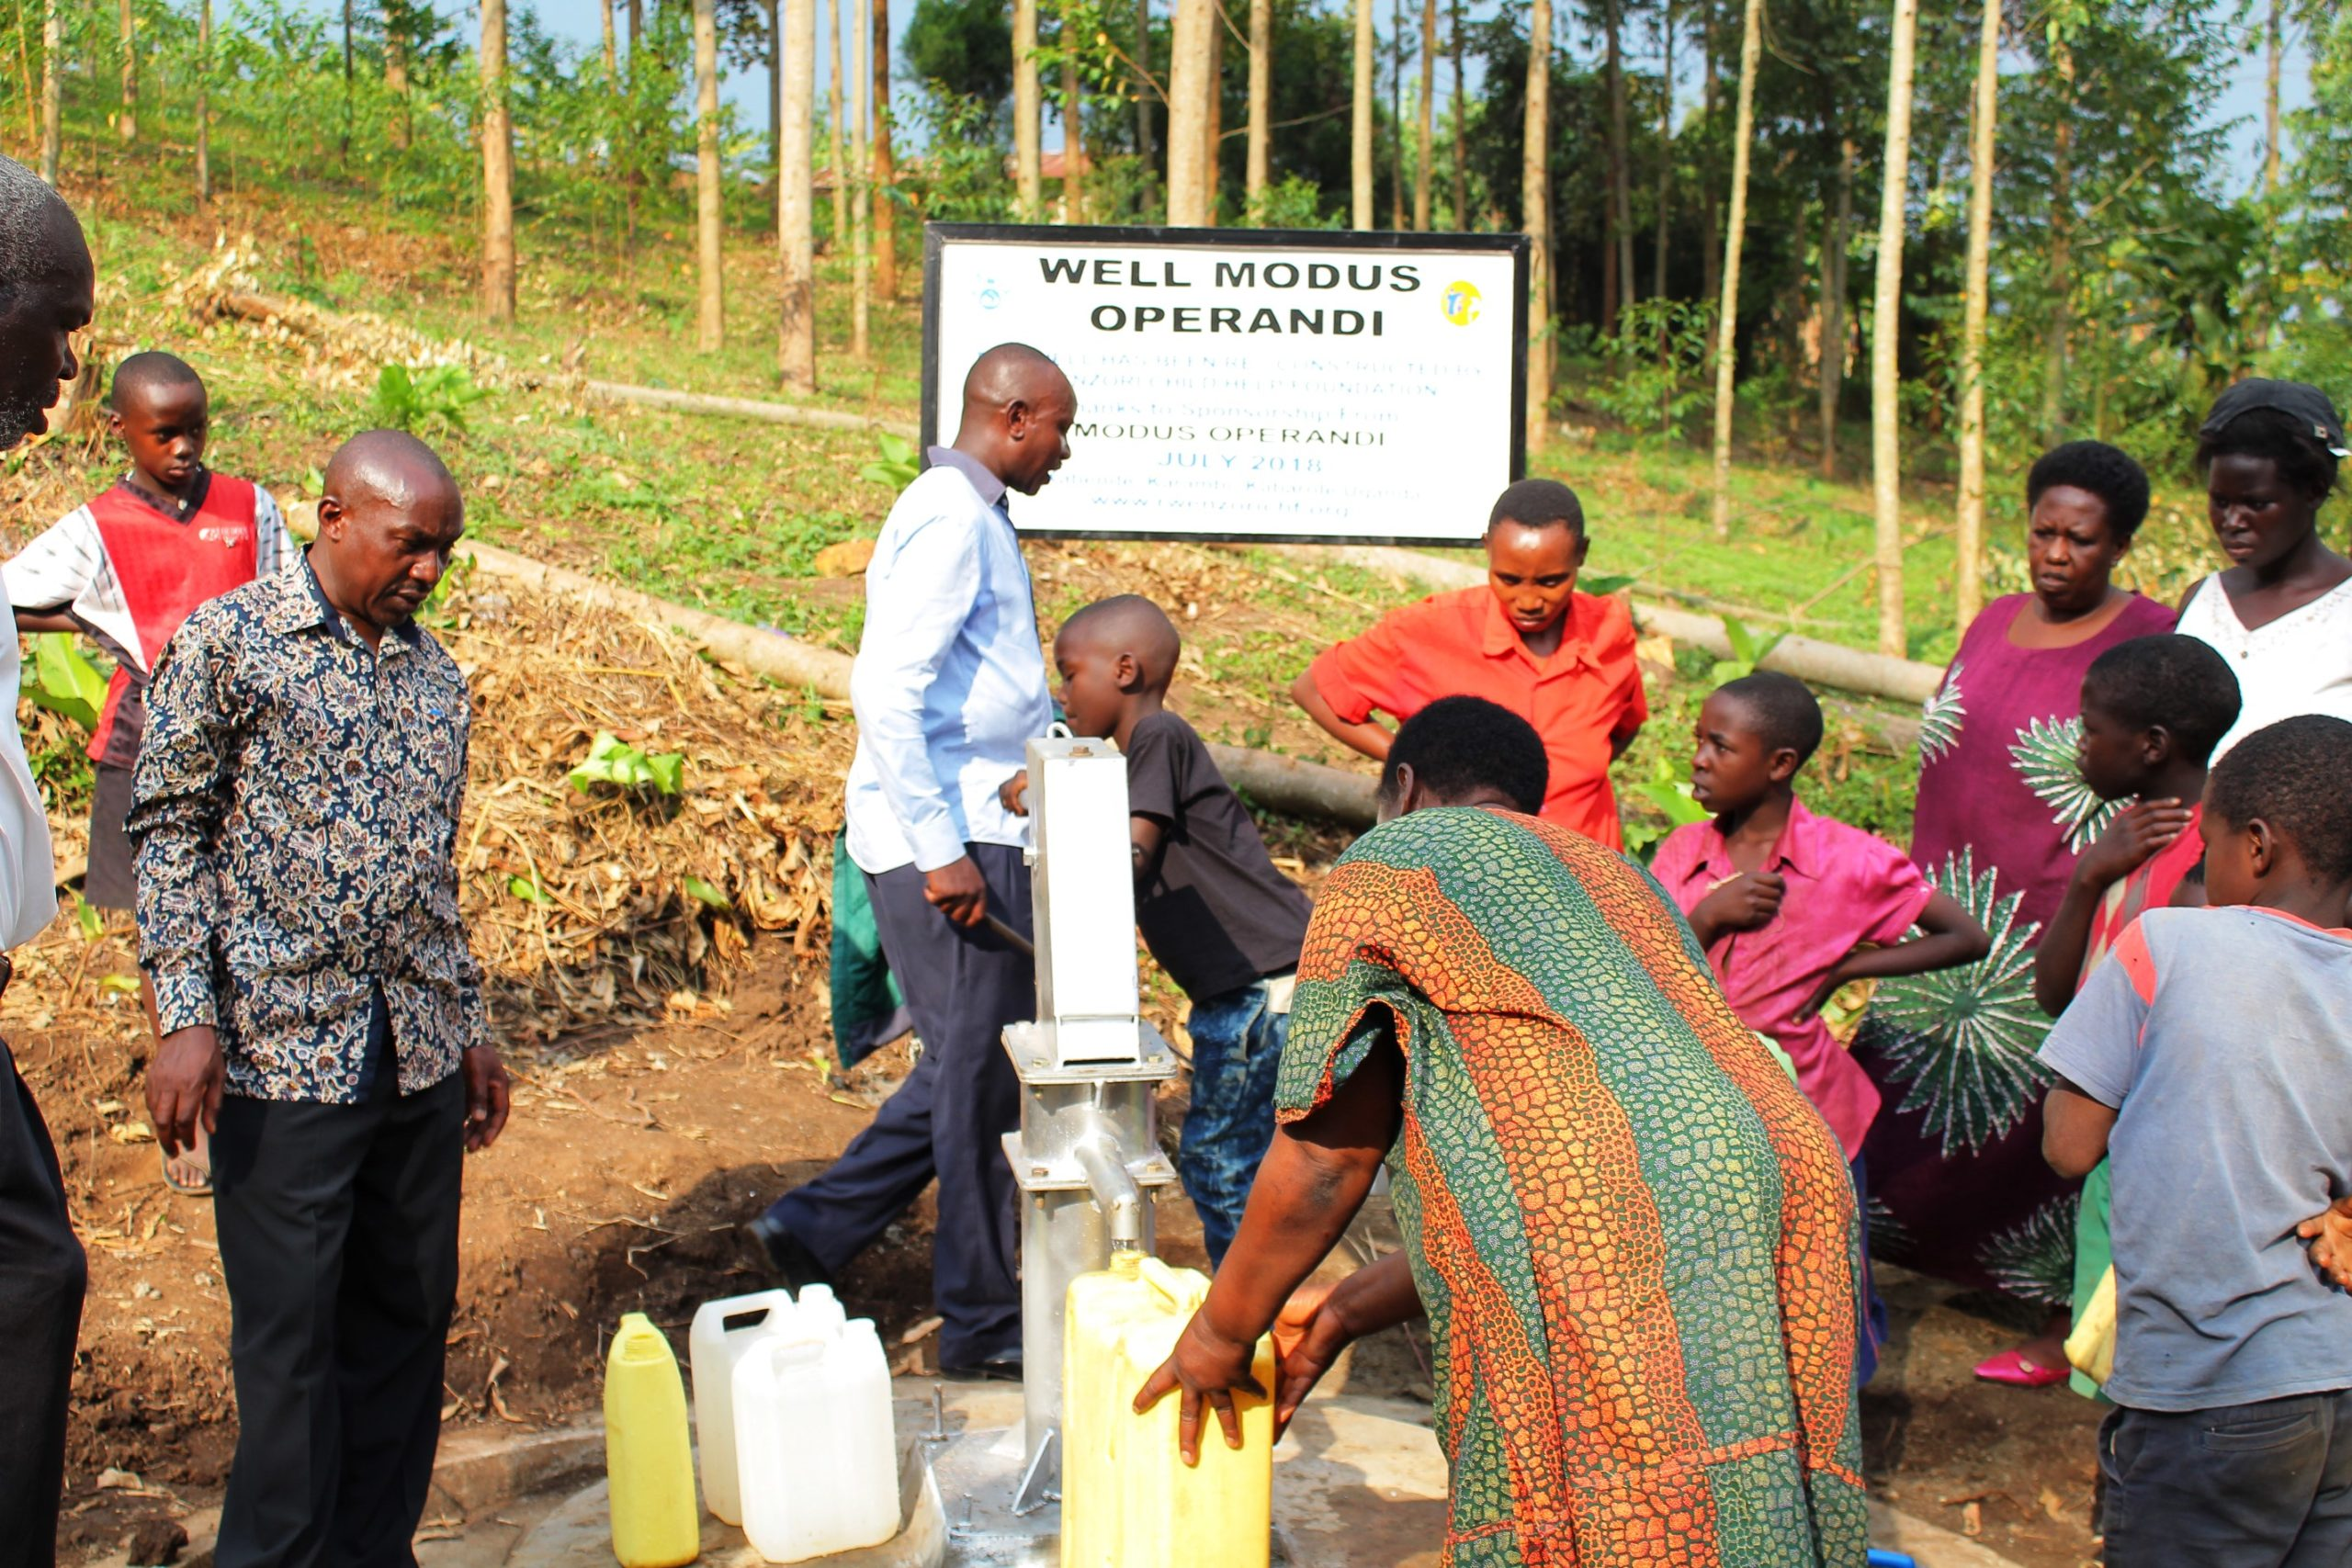 Karangura: Caught up between the dual danger of COVID-19 pandemic and water crisis